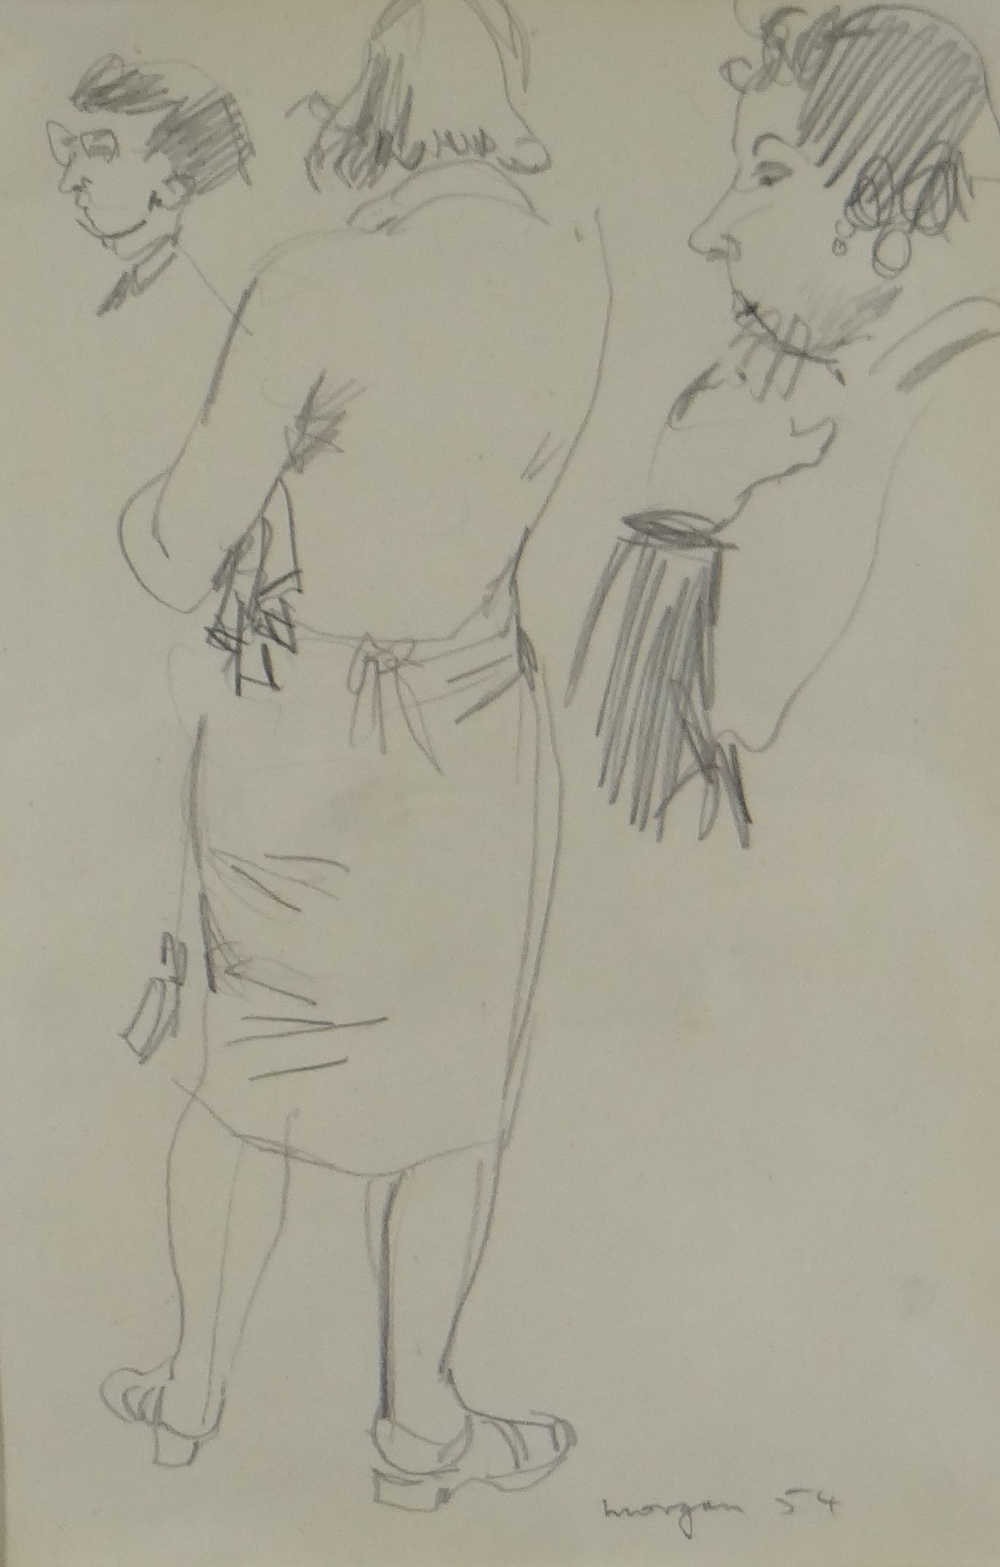 GLYN MORGAN pencil drawing - study of a standing female (possibly a preliminary drawing for a